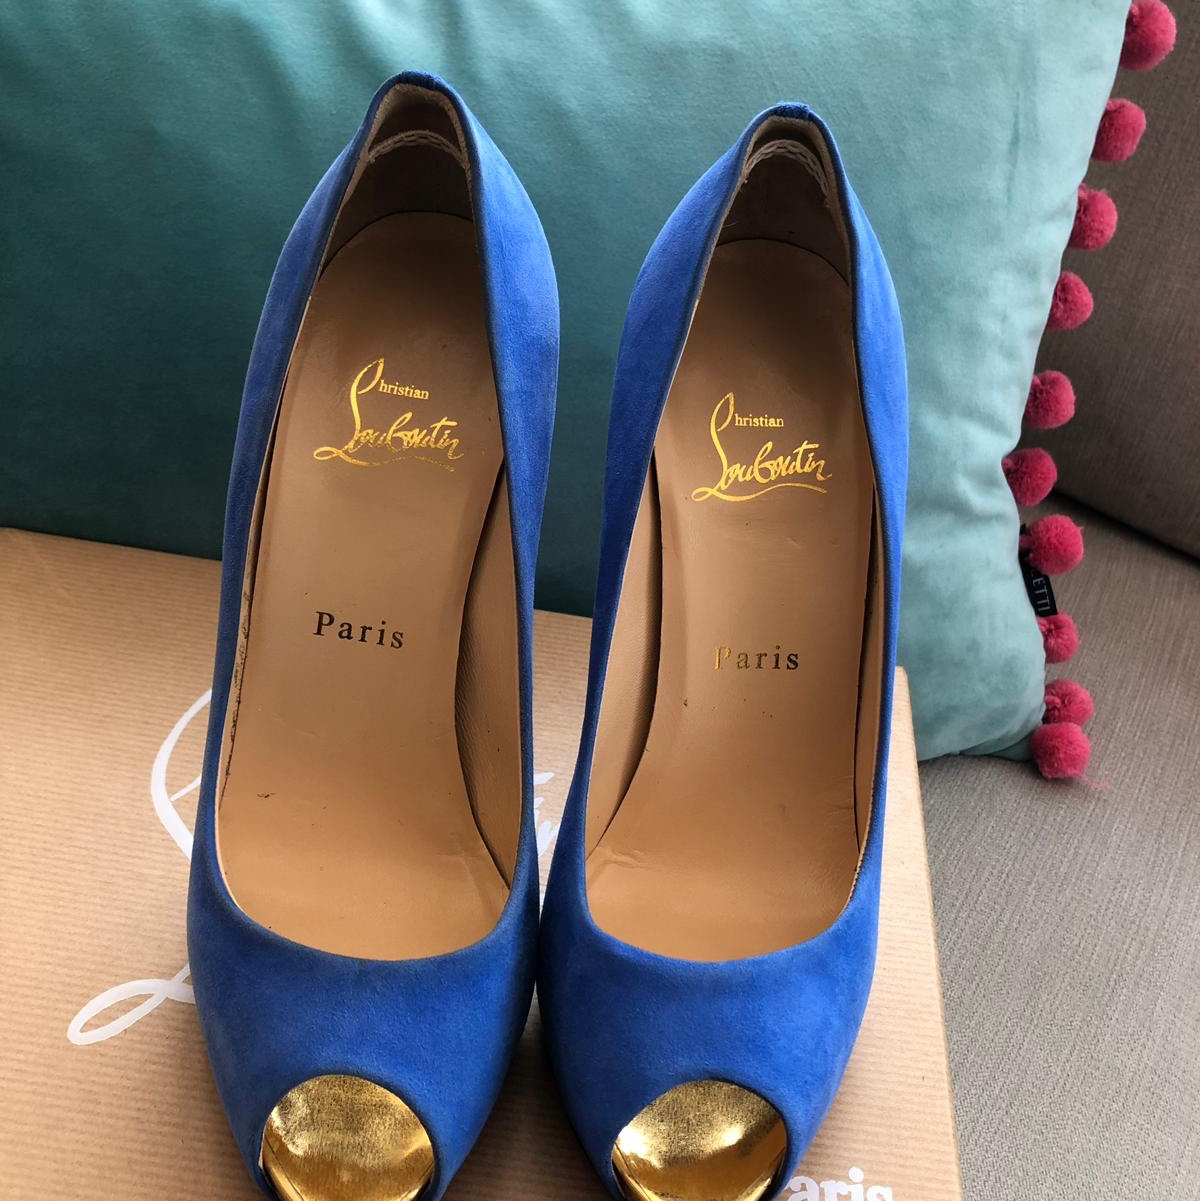 Beautiful louboutins Royal blue suede with gold Depop